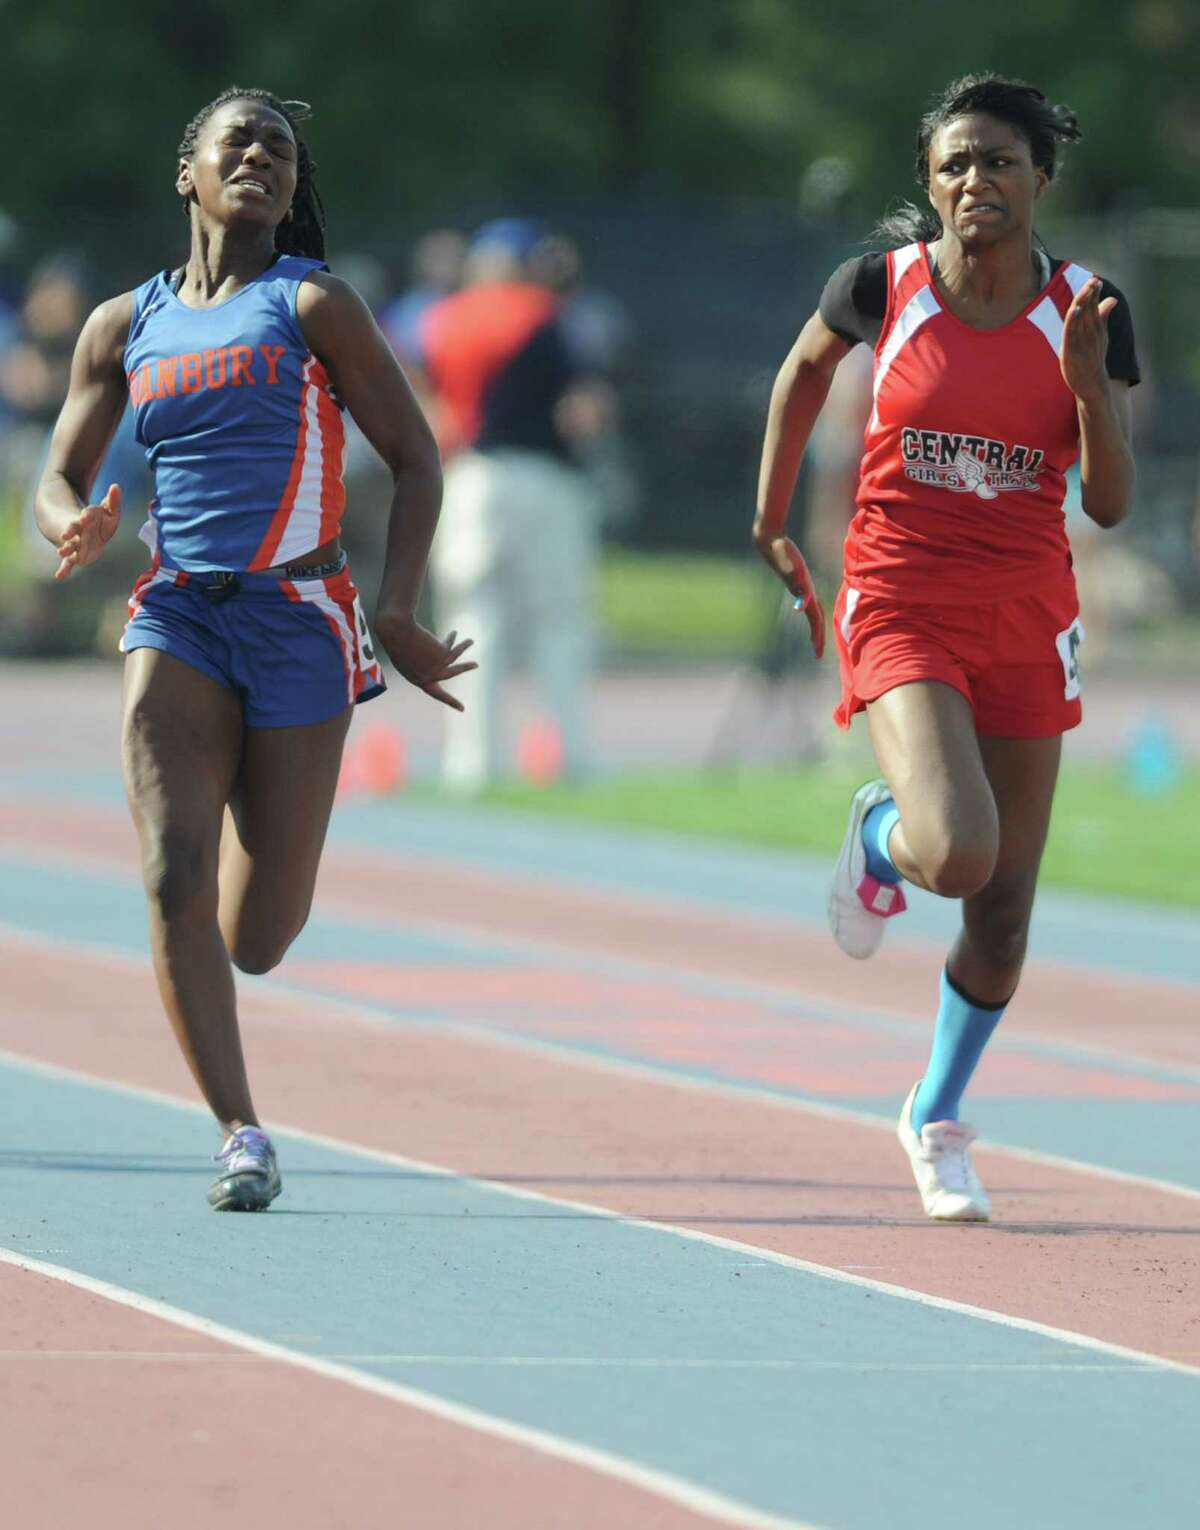 Danbury's Niema Riley, left, and Bridgeport Central's Kanajzae Brown battle in the girls 100 meter dash at the high school FCIAC track and field championships at Danbury High School in Danbury, Conn. Tuesday, May 27, 2014. Brown won the event with a time of 12.37 seconds and Riley finished second.